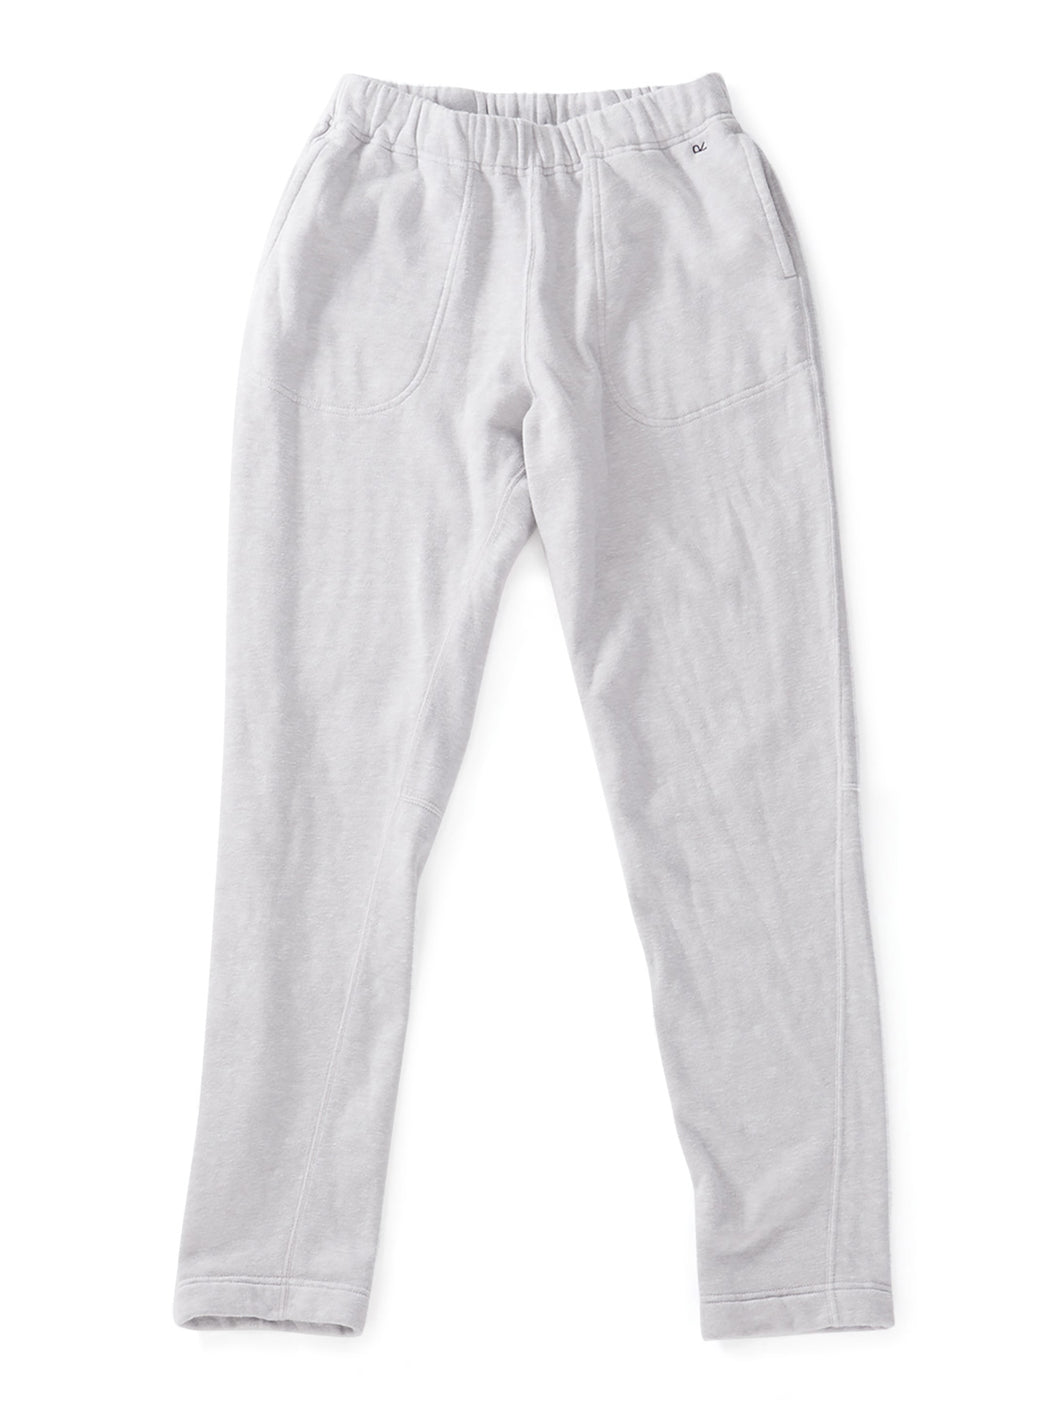 Womens Heritage US Urake Sweat Pants in White